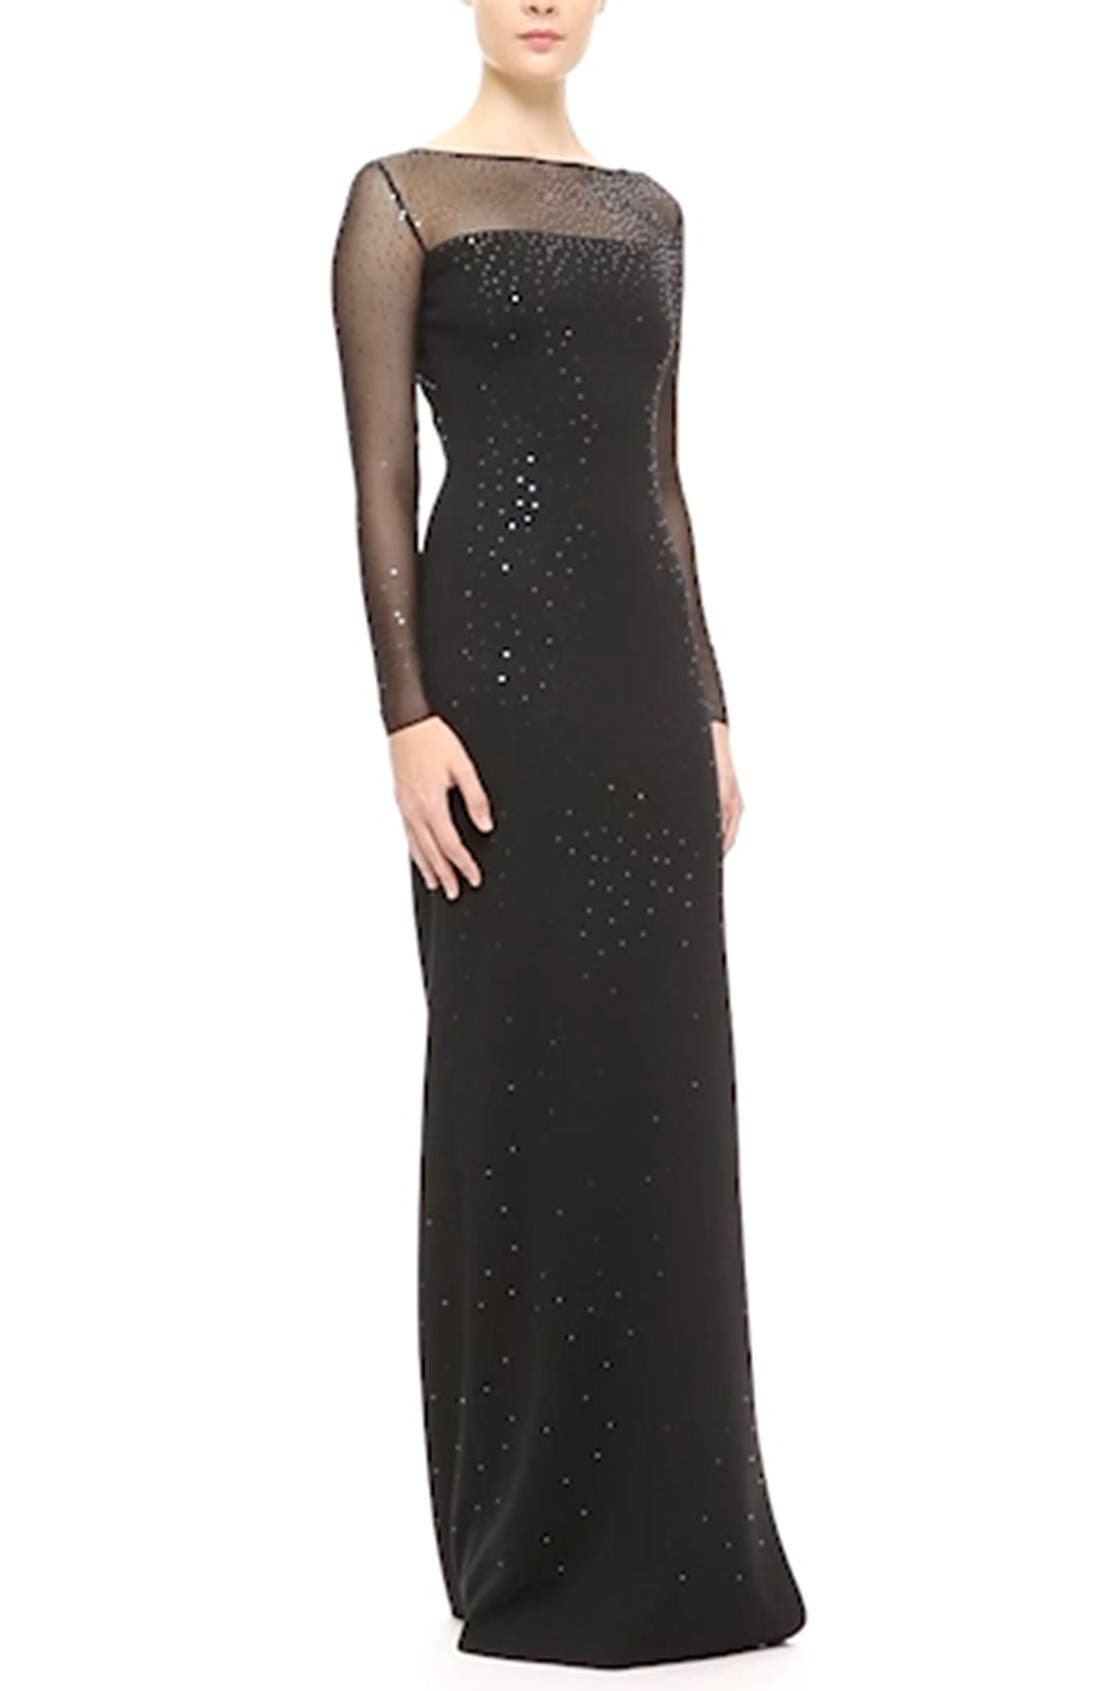 ST. JOHN COLLECTION, Embellished Shimmer Milano Knit Gown, Alternate thumbnail 3, color, 001